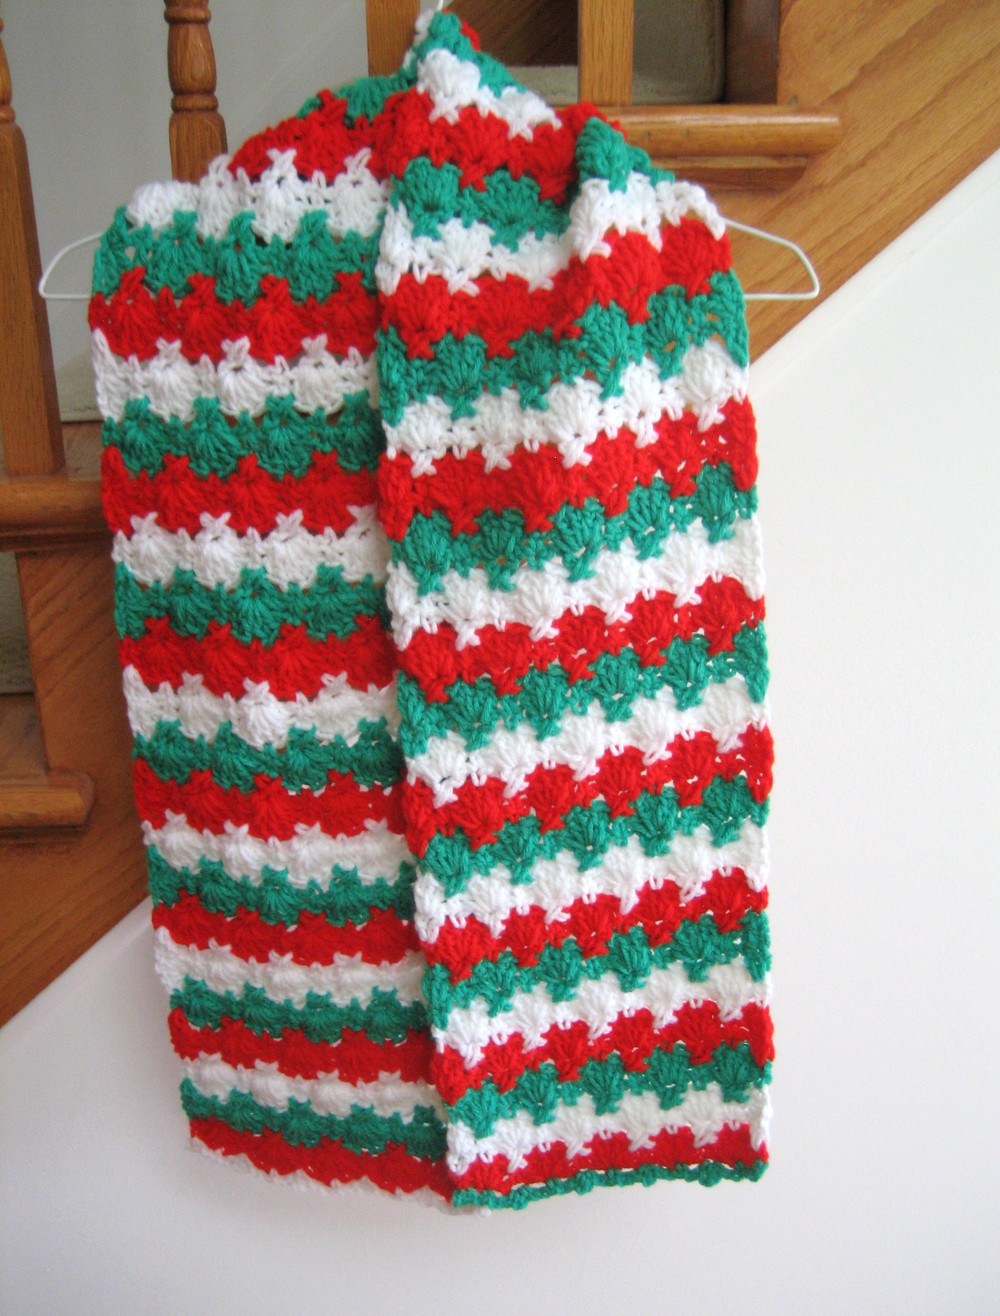 Free Crochet Patterns For Christmas Scarves : Holiday Criss Cross Crocheted Scarf Pattern FaveCrafts.com